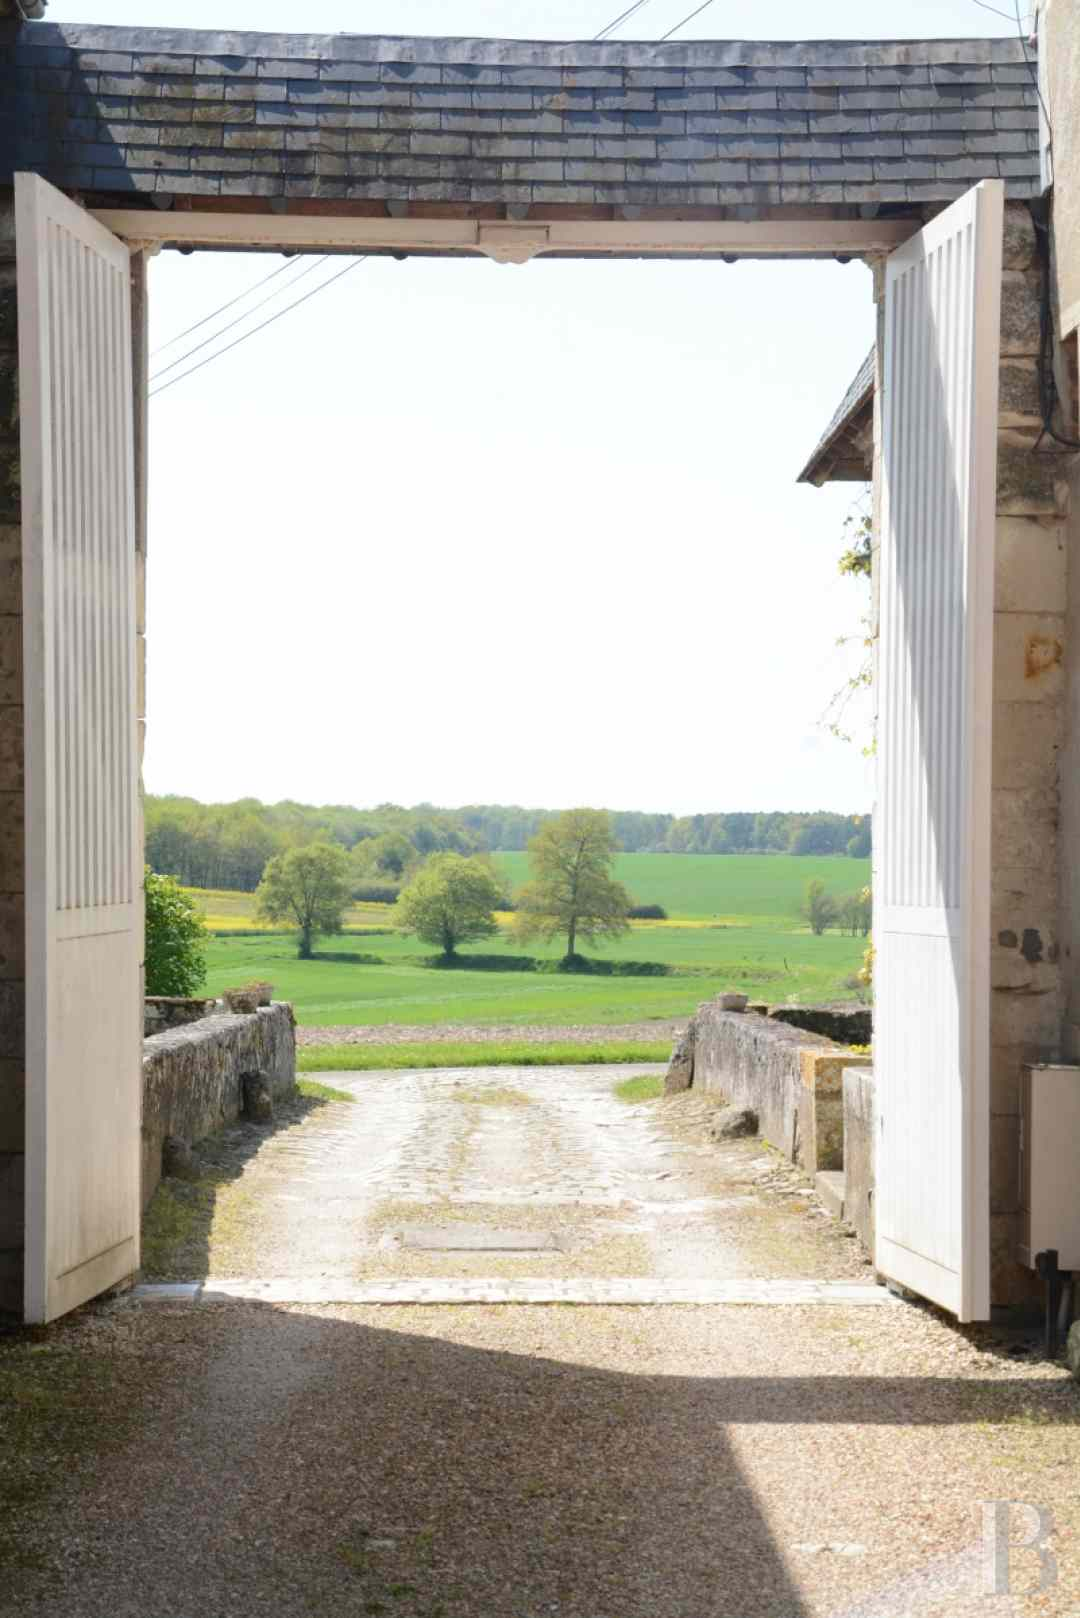 property for sale France center val de loire hunting grounds - 14 zoom